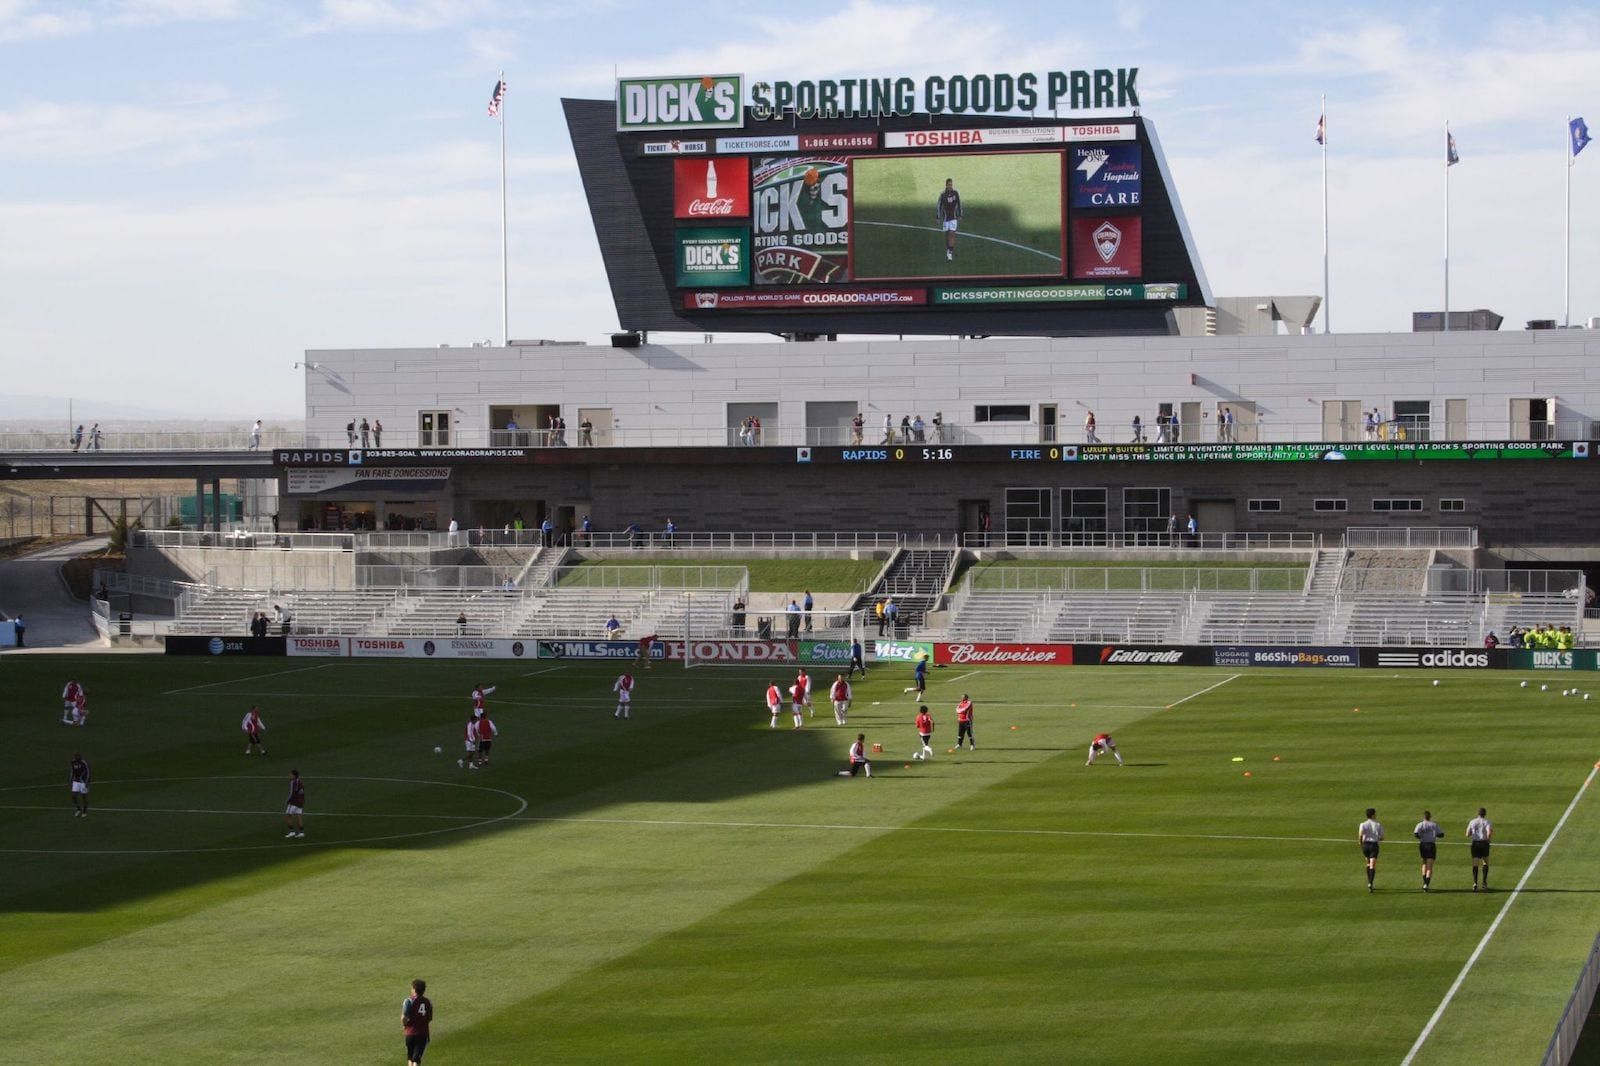 Dick's Sporting Goods Park Soccer Field